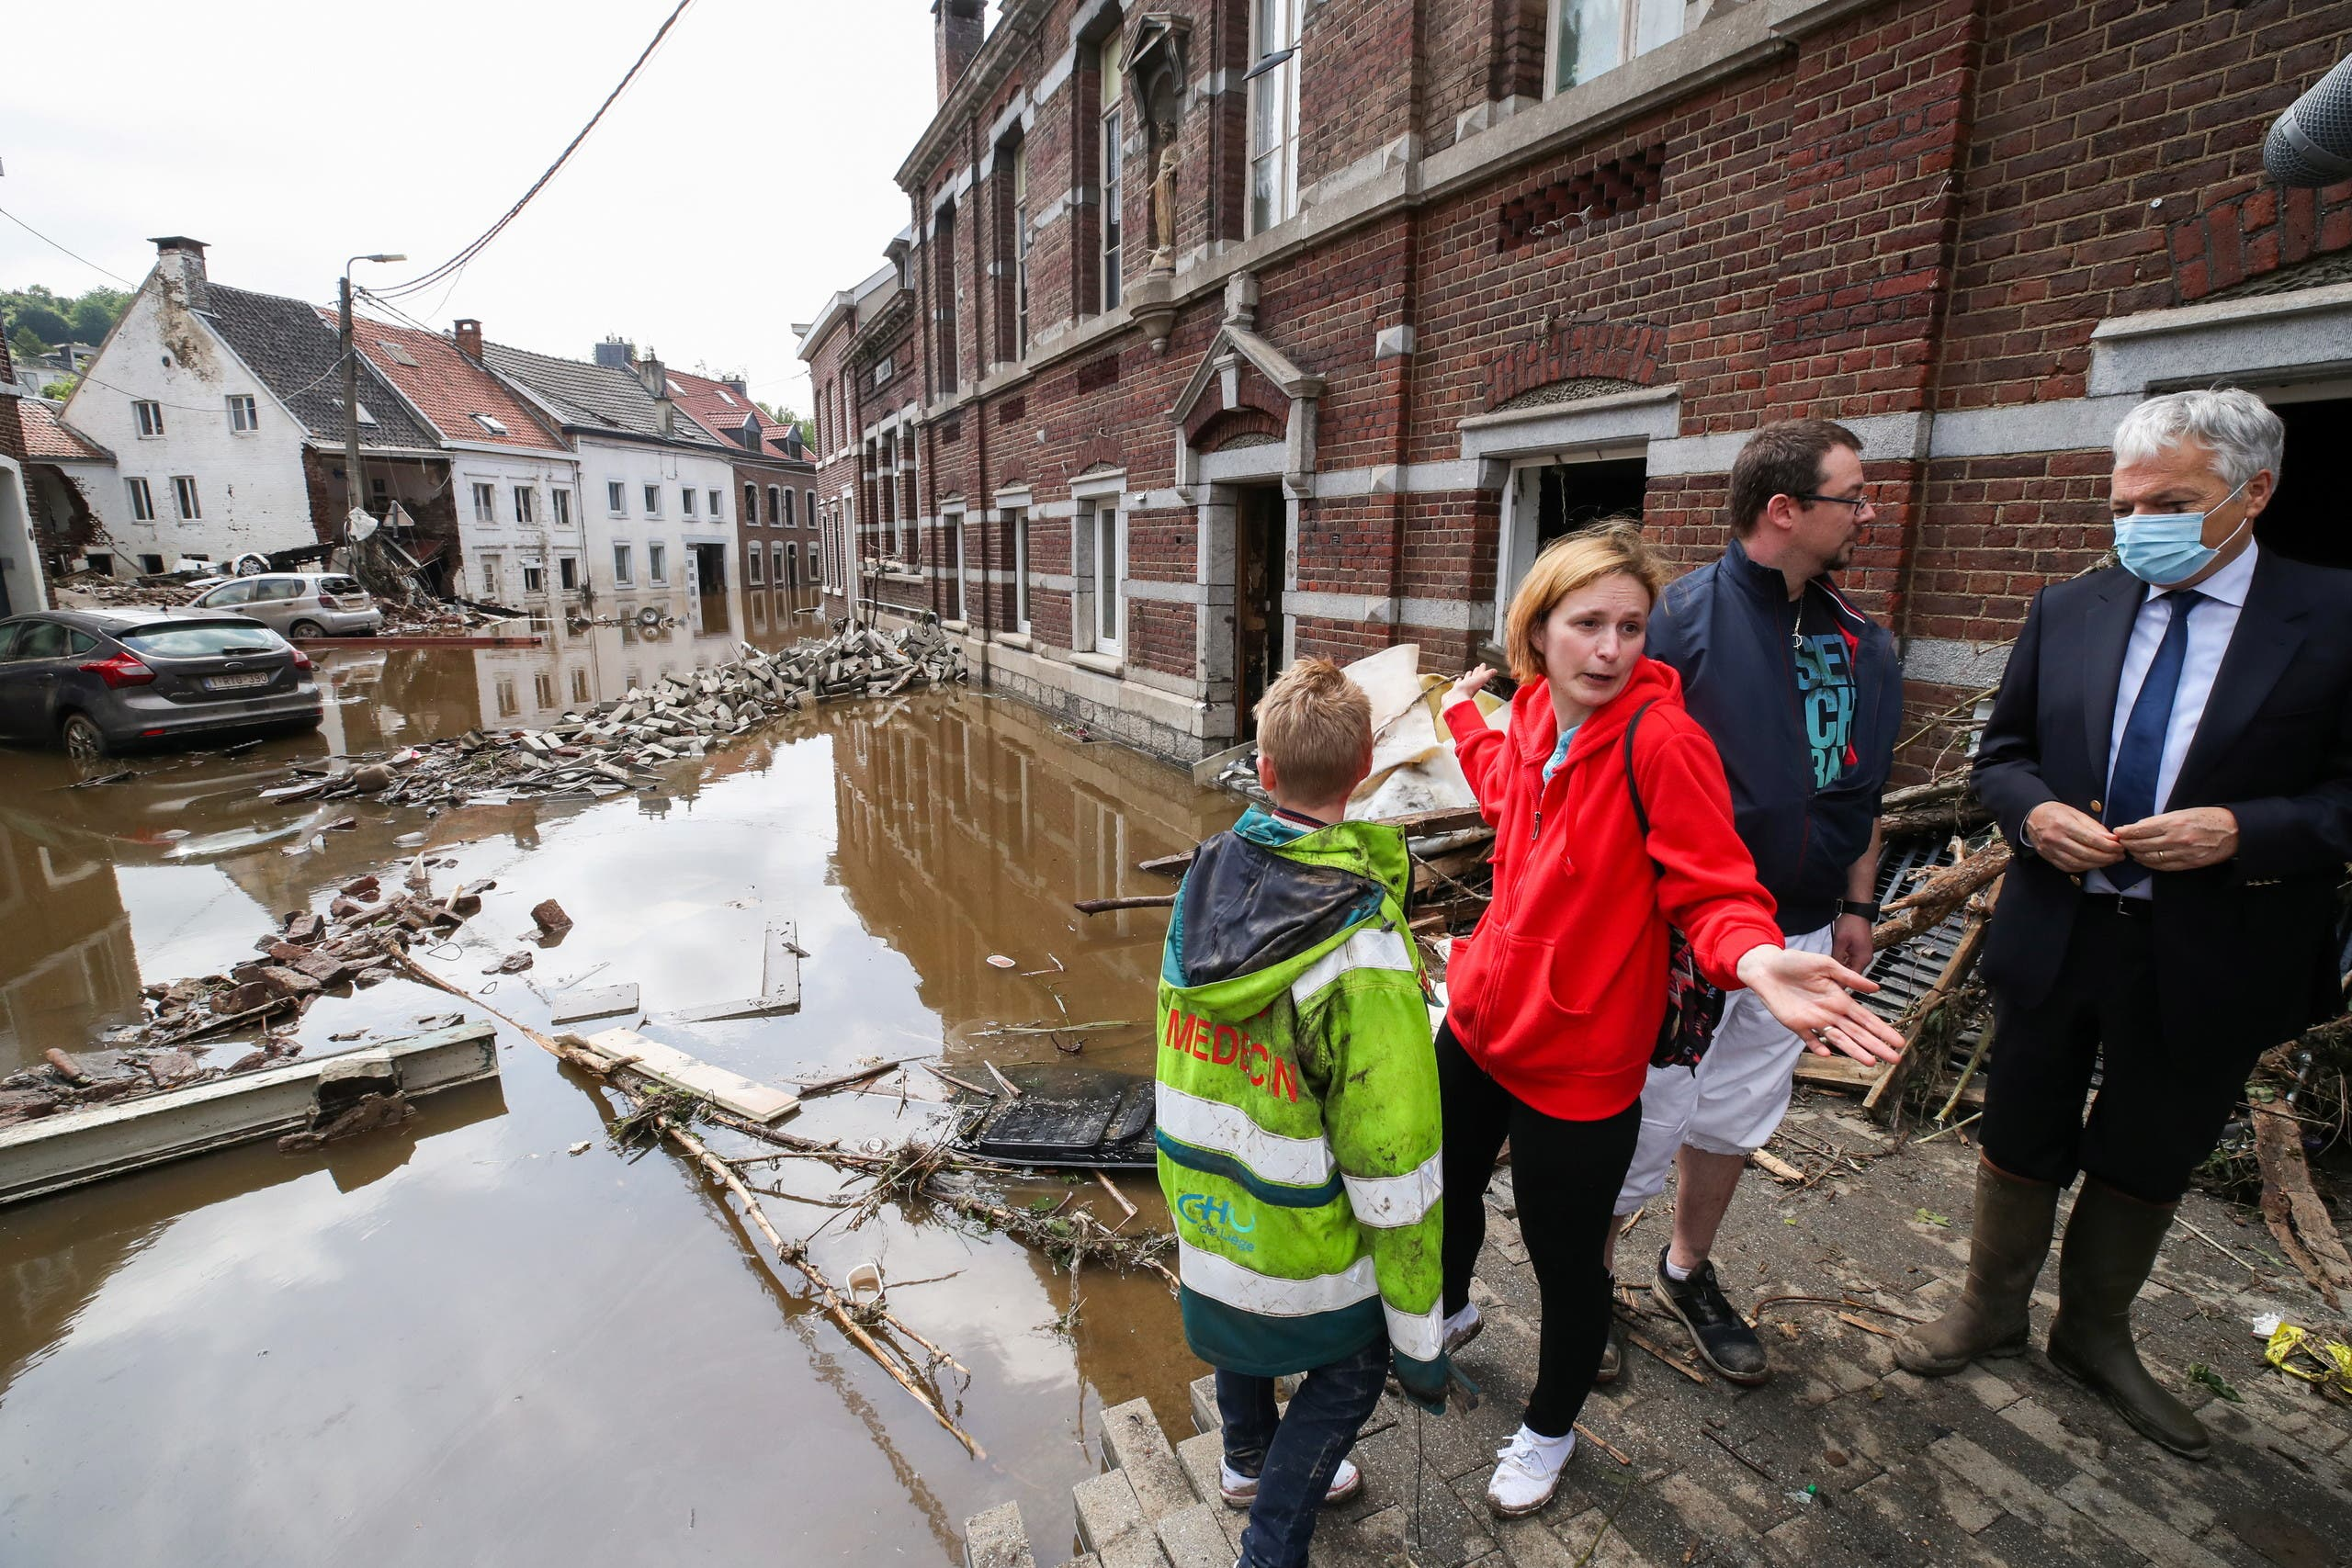 European Commissioner for Justice Didier Reynders speaks with Madeline Brasseur, 37, Paul Brasseur, 42, and their son Samuel, 12, at an area affected by floods, following heavy rainfalls, in Pepinster, Belgium, July 17, 2021. (Reuters)